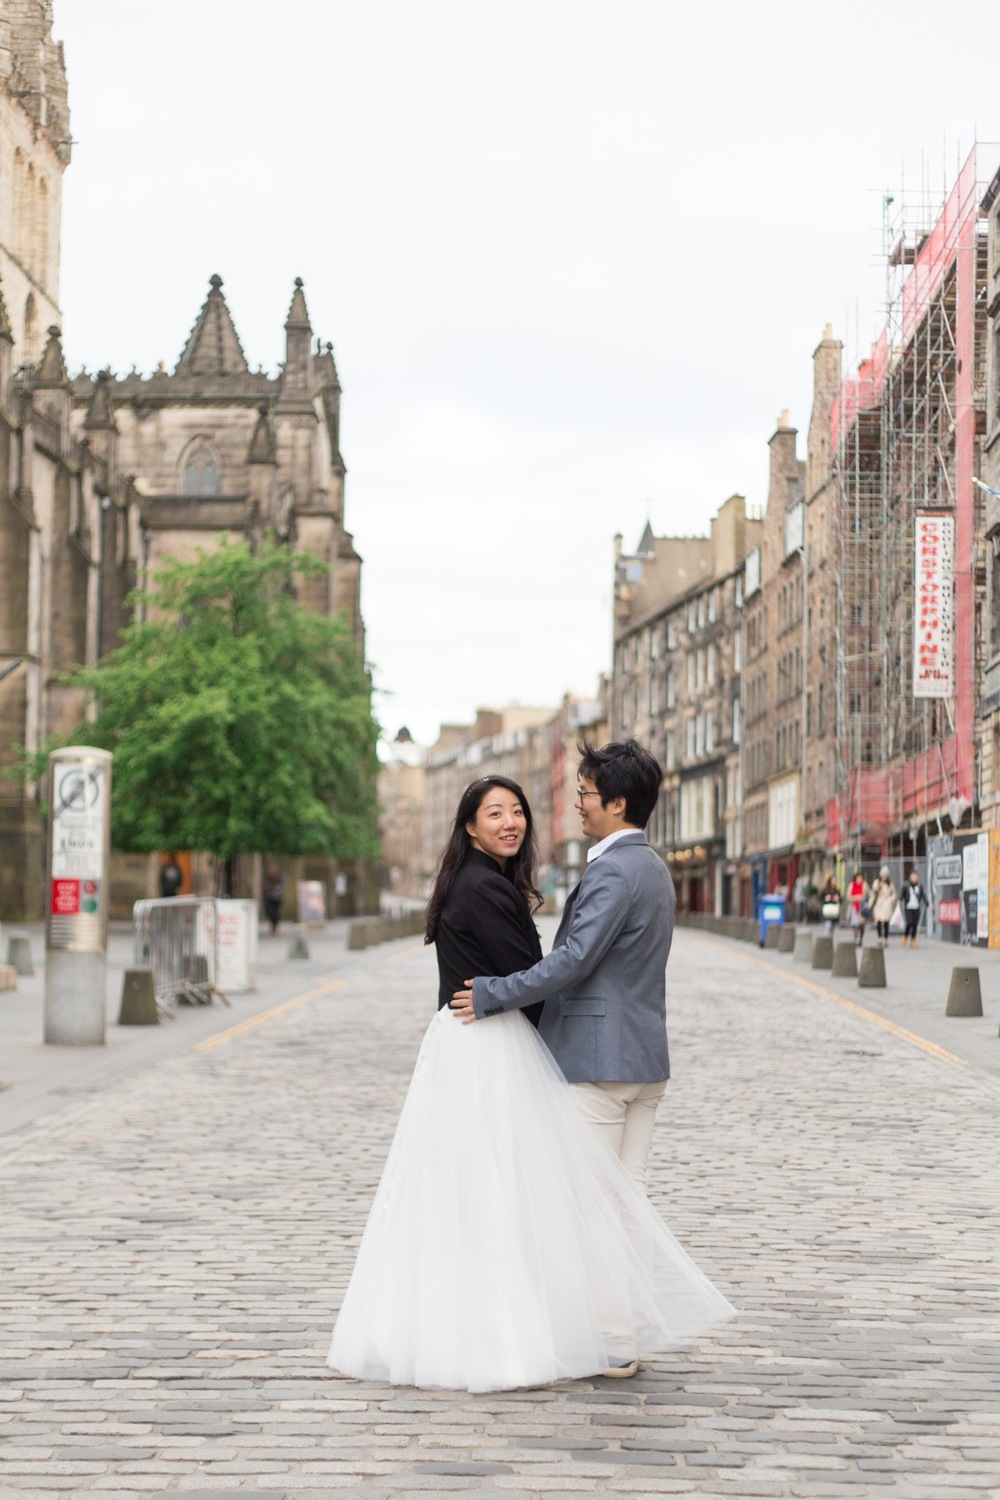 Flytographer: Kim in Edinburgh